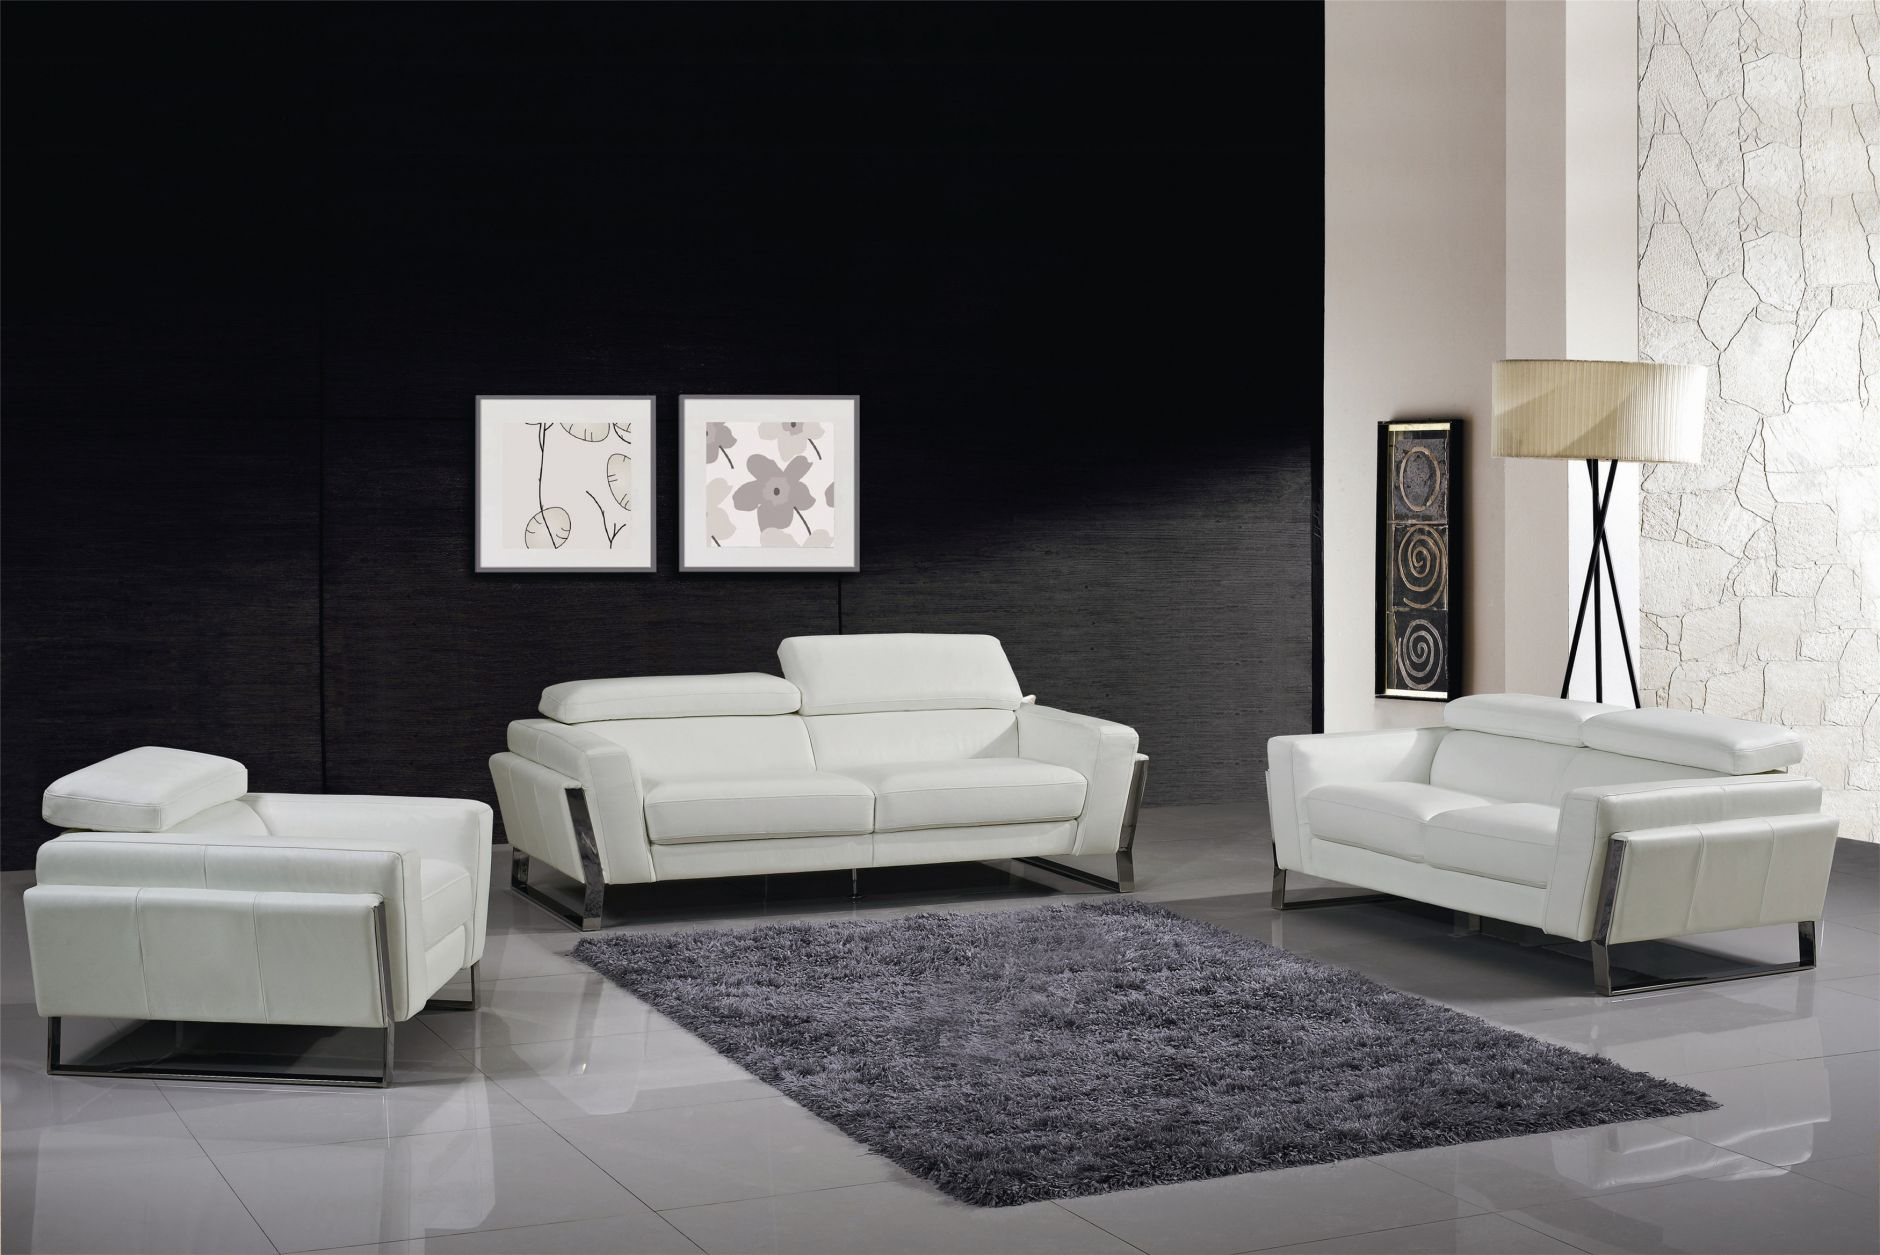 polsterm bel sofas 798die m bel aus italien. Black Bedroom Furniture Sets. Home Design Ideas